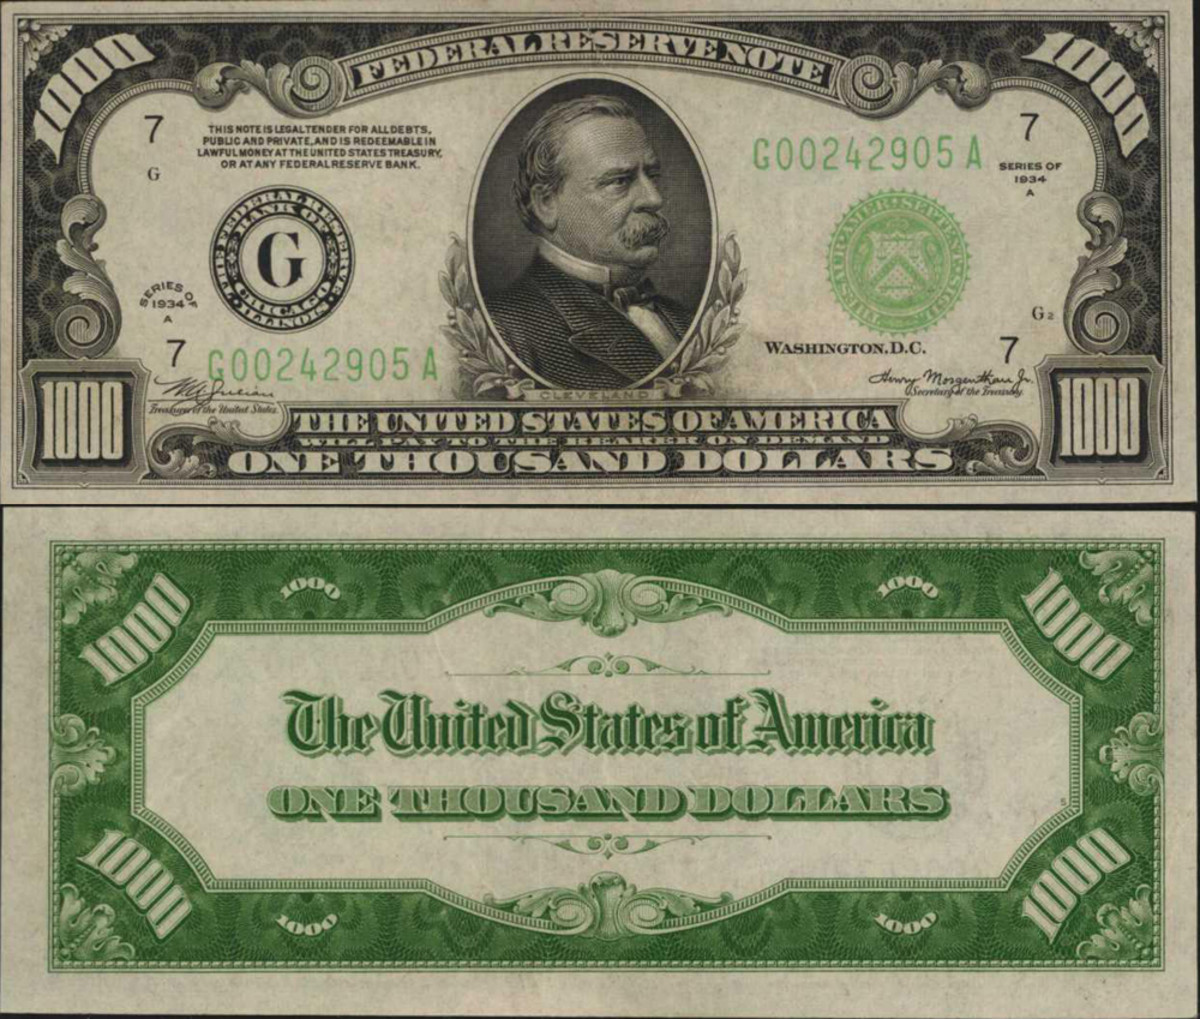 This 1934A $1000 Federal Reserve Note from Chicago was estimated to sell for $3,000-$4,000 and sold for $4,320. The bold design and dark green overprints make this beautiful note a nice addition to a collection.